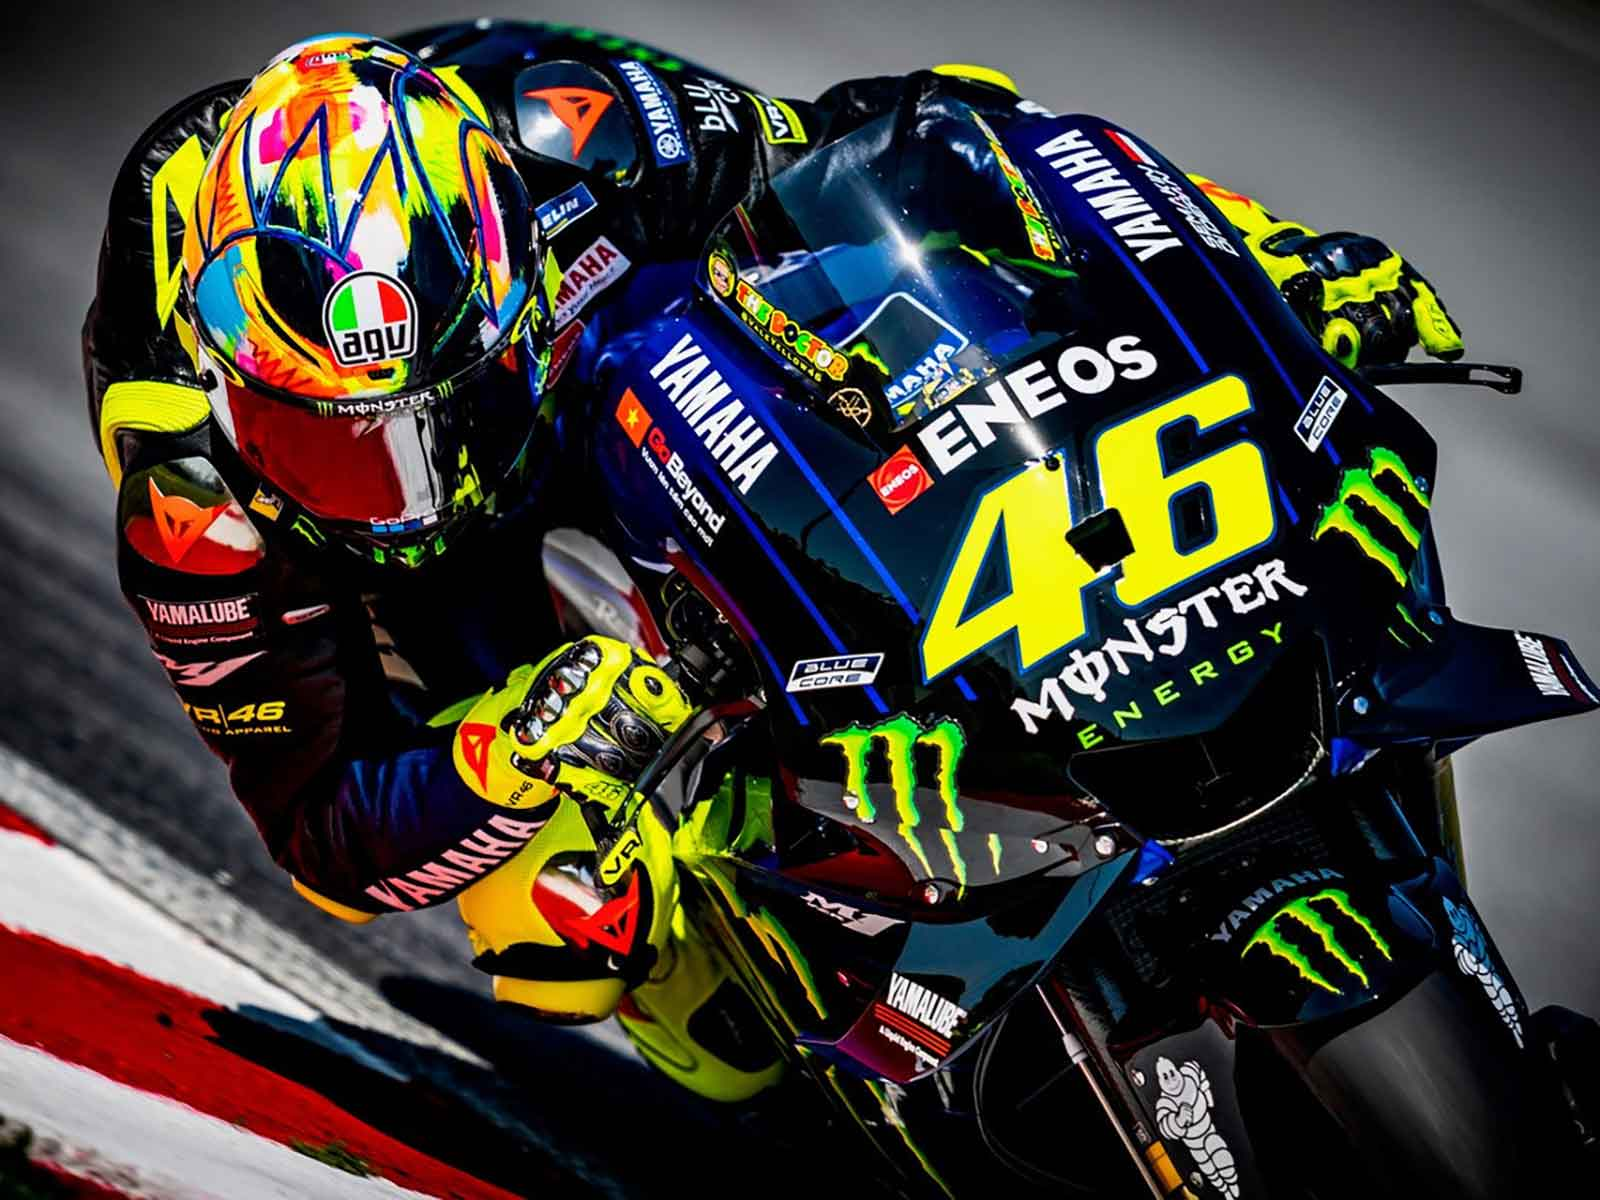 Valentino Rossi 2019 Wallpapers - Wallpaper Cave